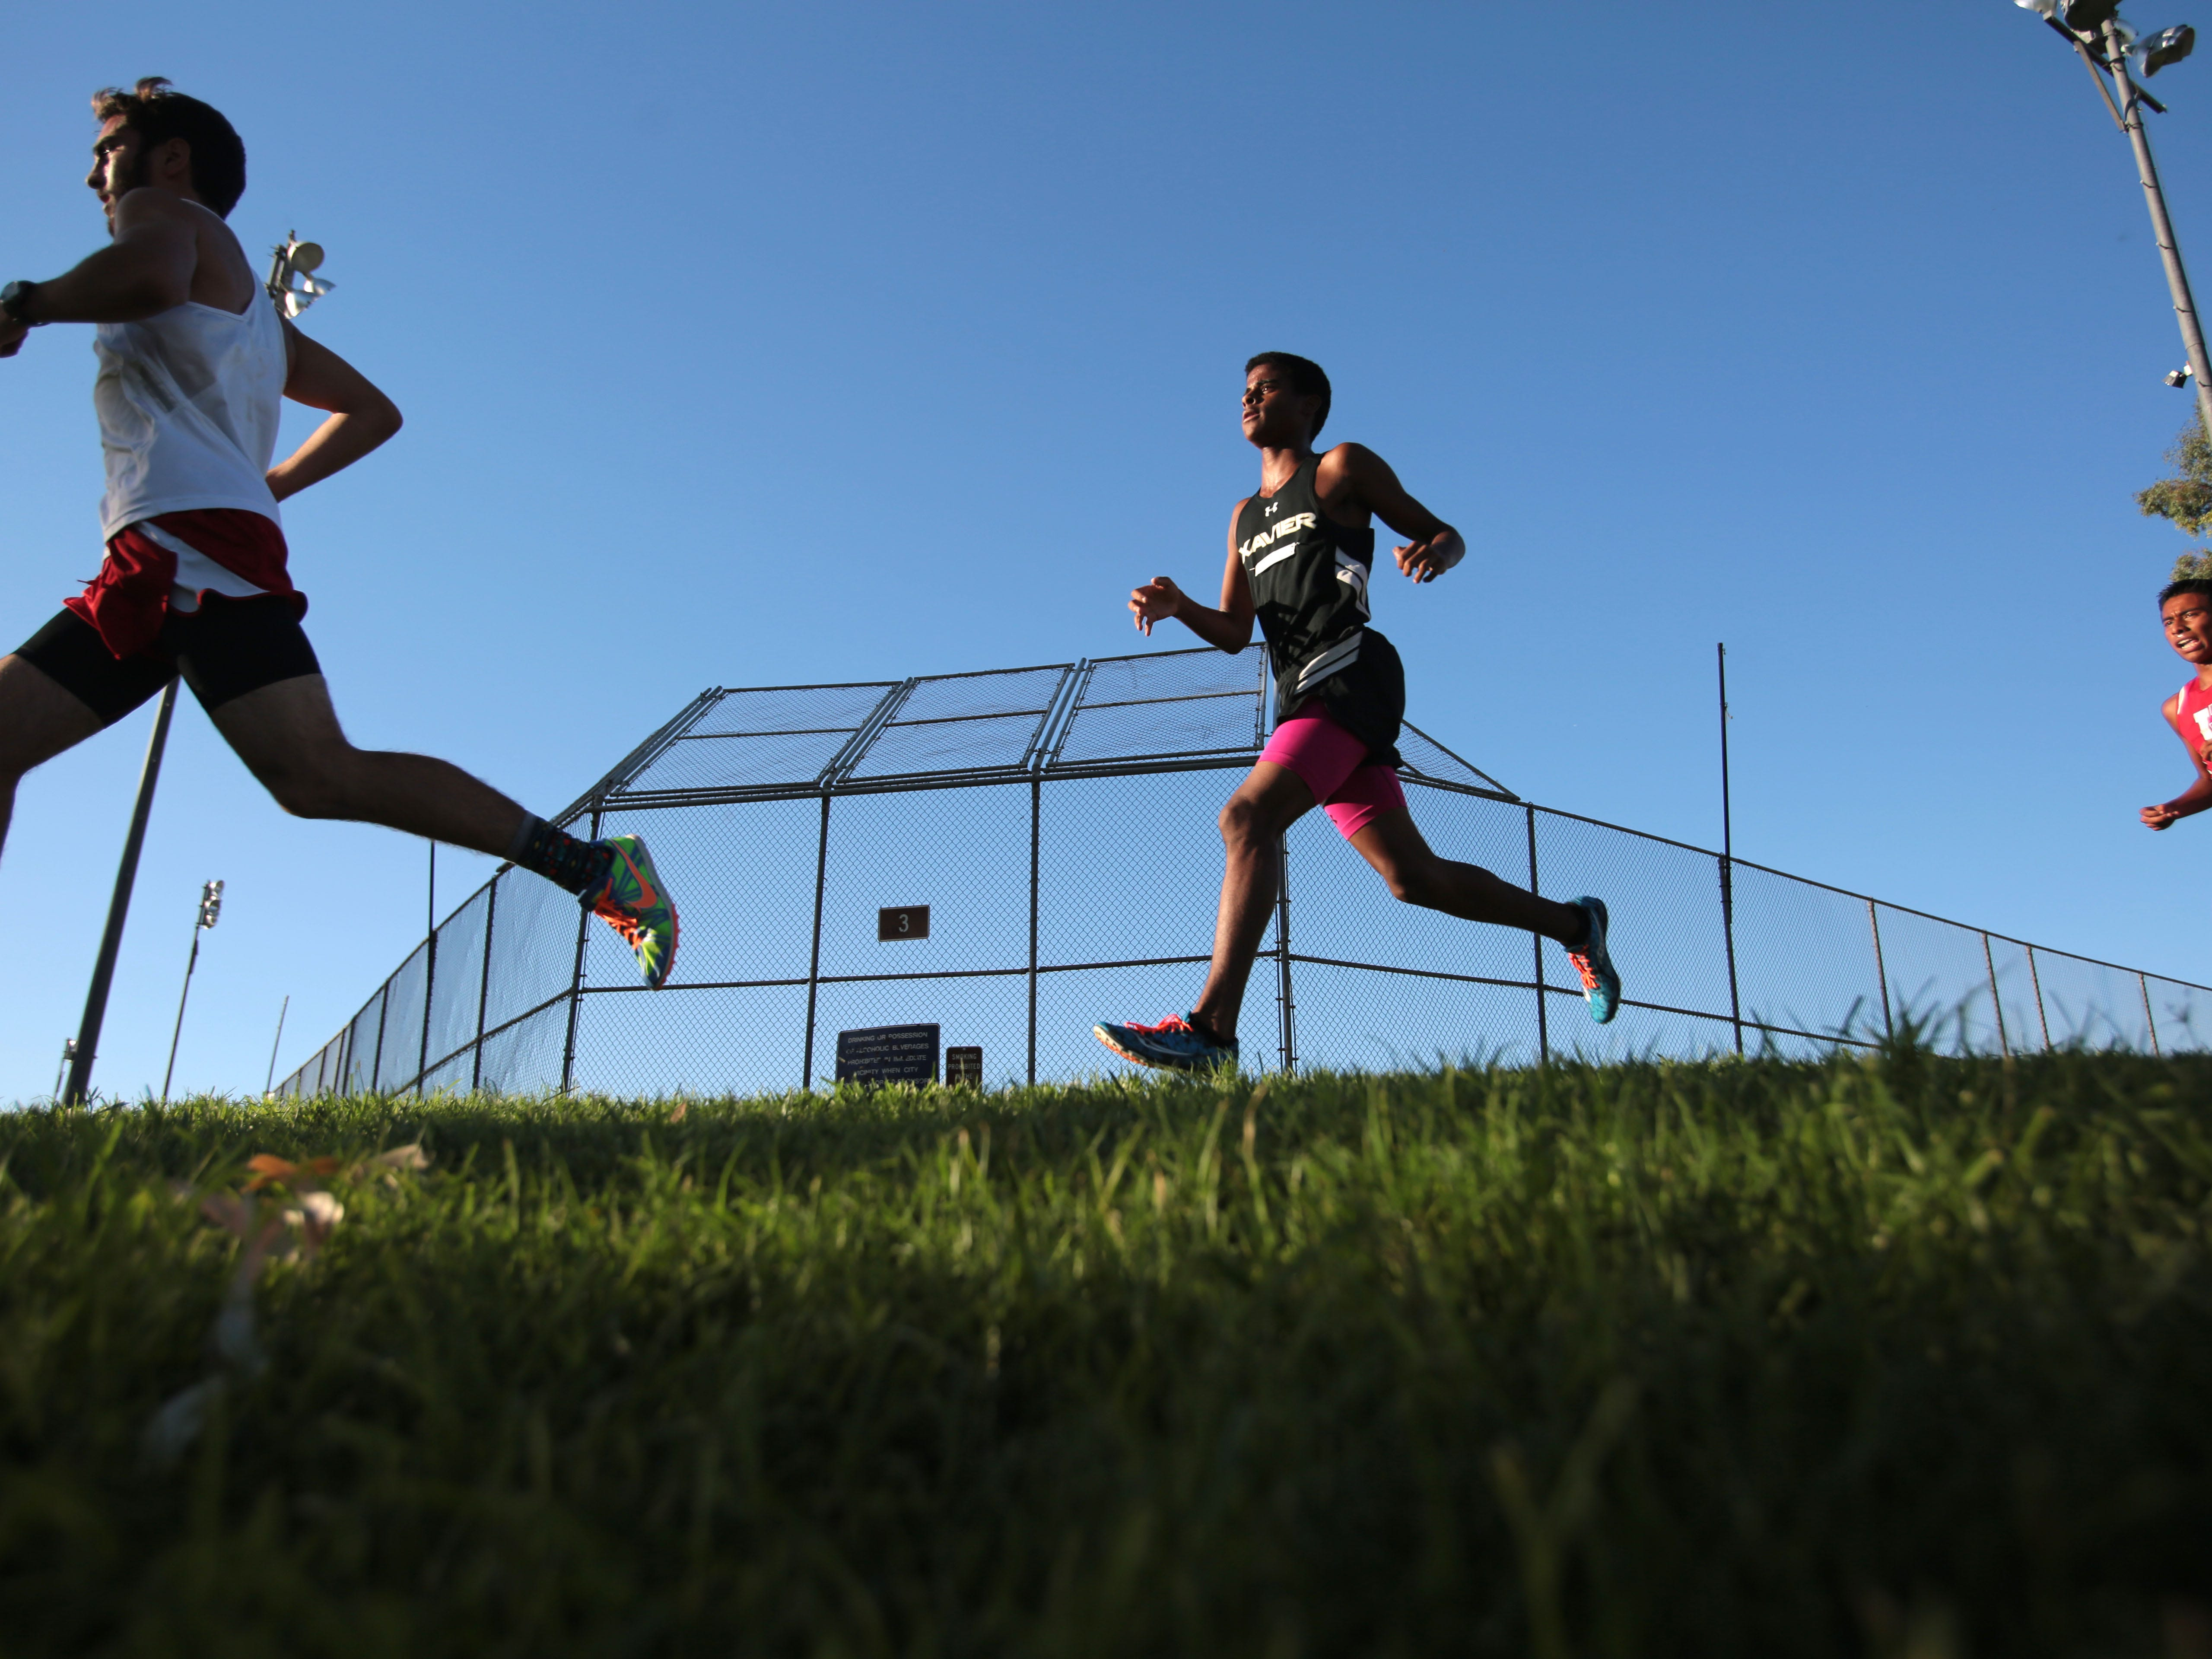 Runners race in the boys' varsity race during the DVL meet at Demuth Park in Palm Springs on Wednesday. Xavier Prep won the race.